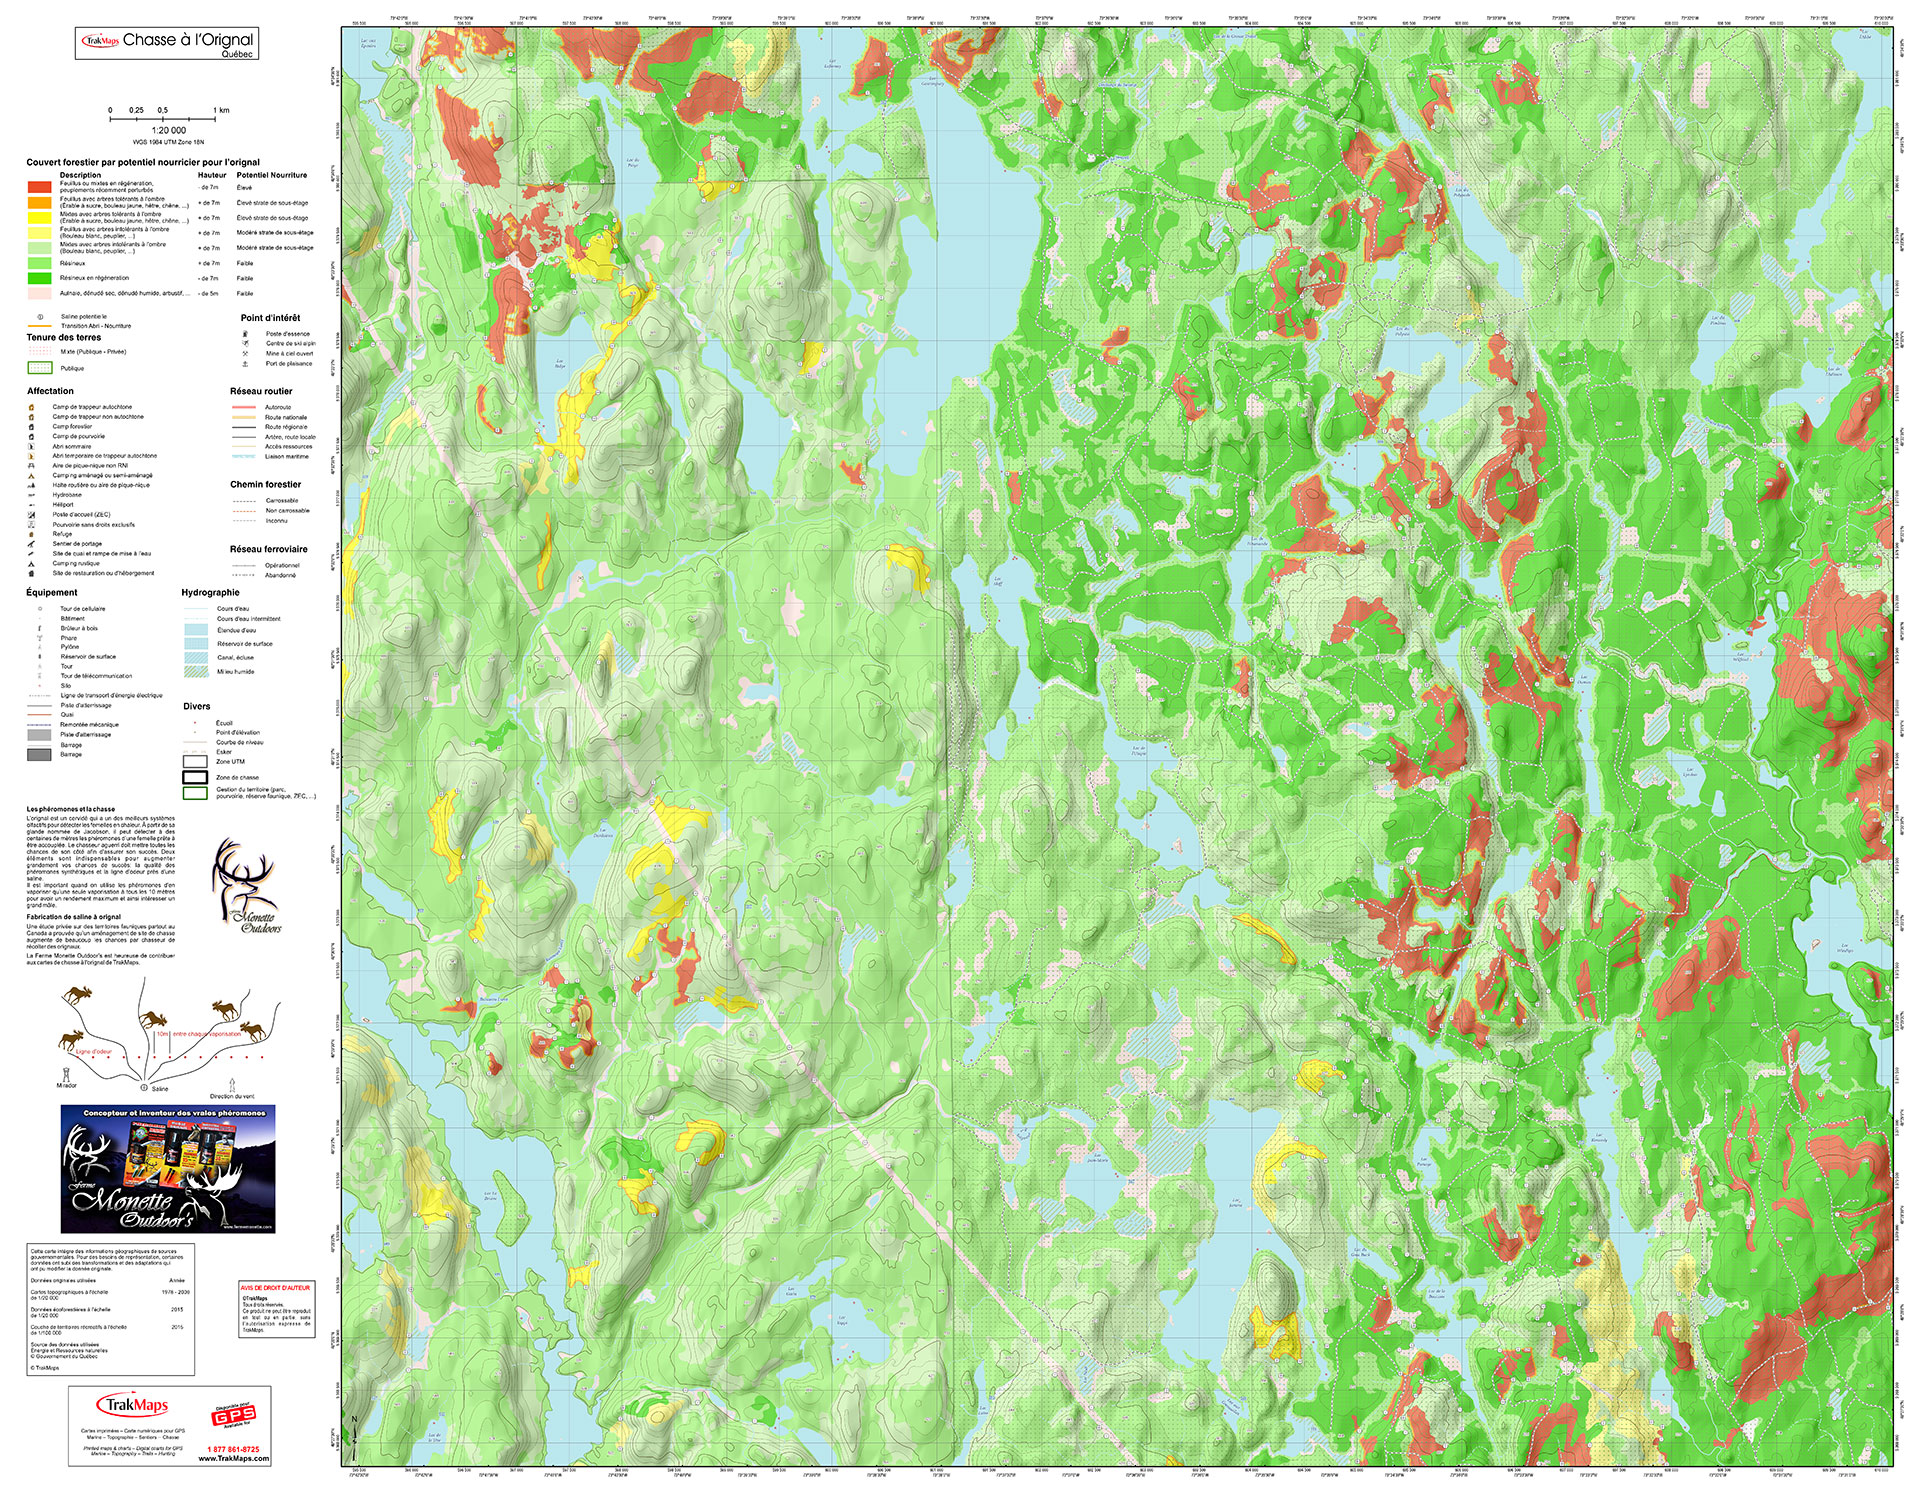 Example of Moose Hunting Map